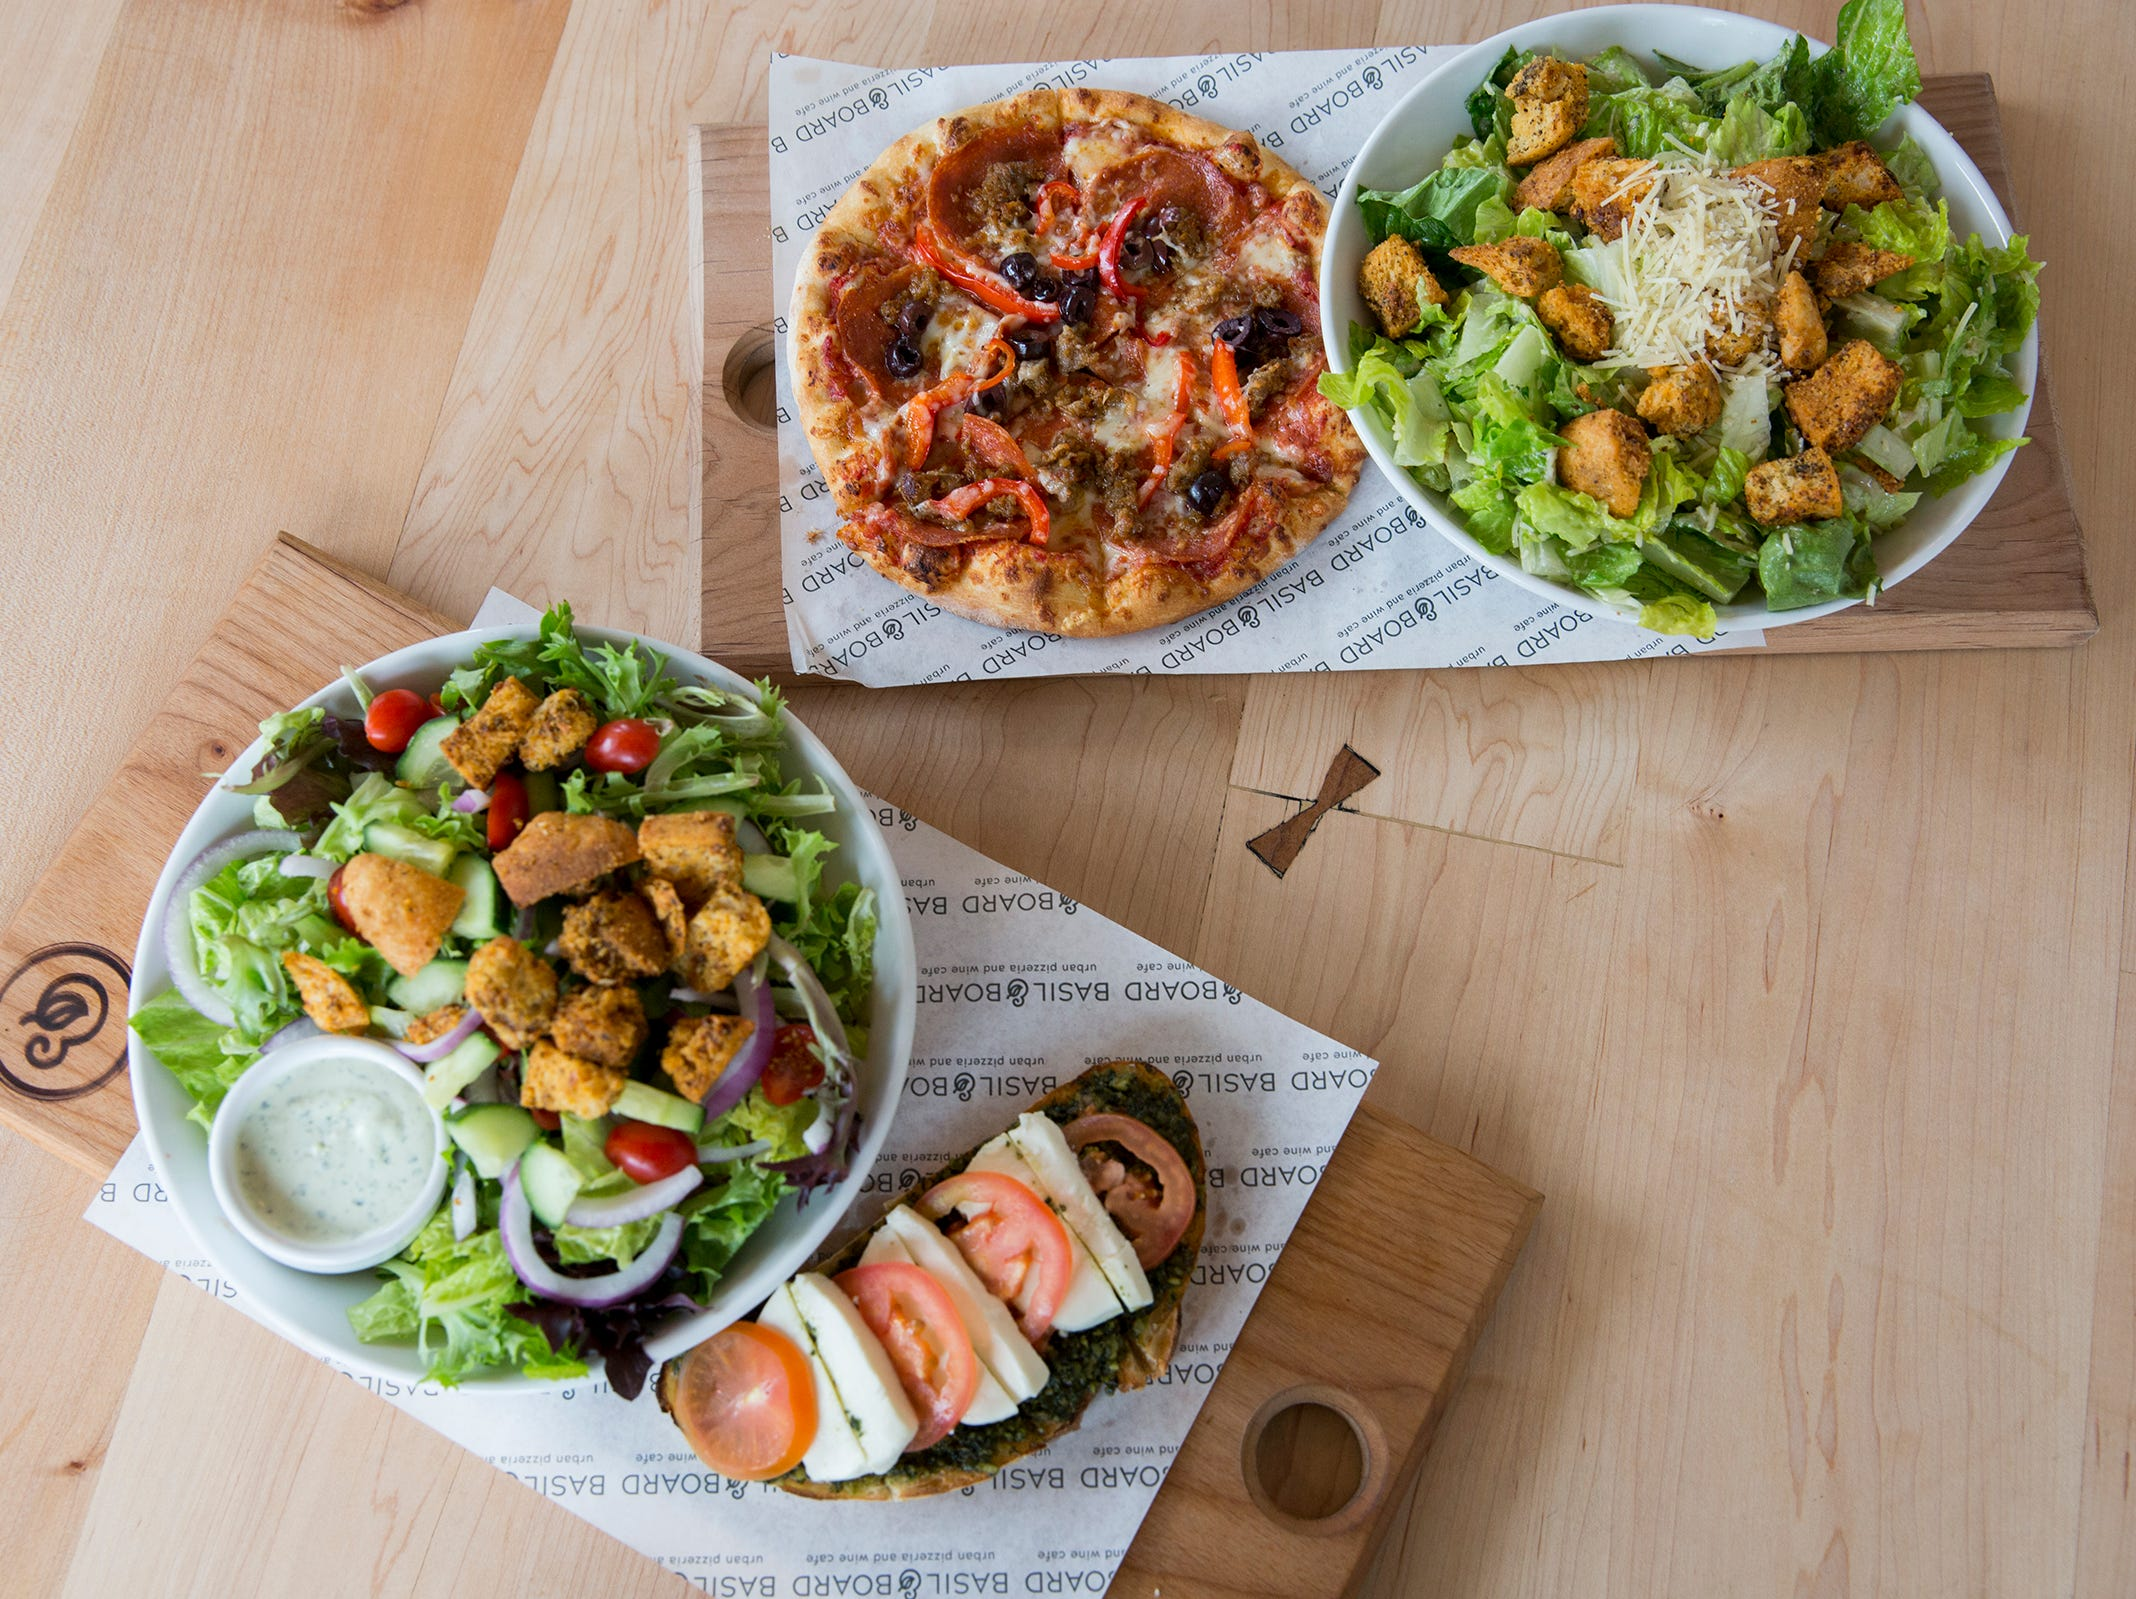 An individual pizza and bruschetta are paired with a salad on the lunch menu combos at Basil & Board in Salem on Tuesday, Feb. 26, 2019.